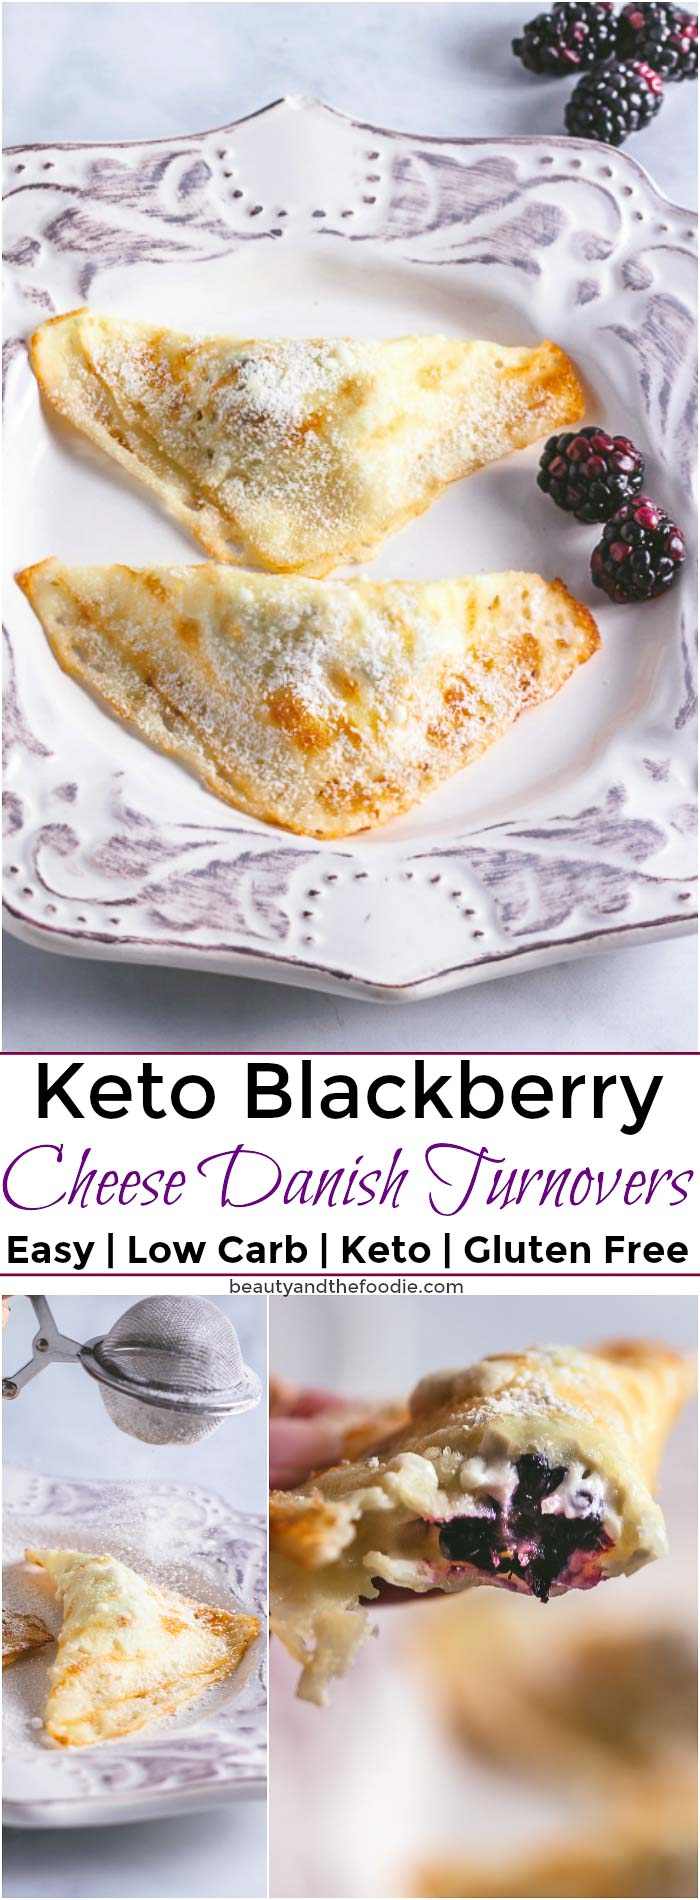 Keto Blackberry Cheese Danish Turnovers- Low carb, easy to make turnovers.